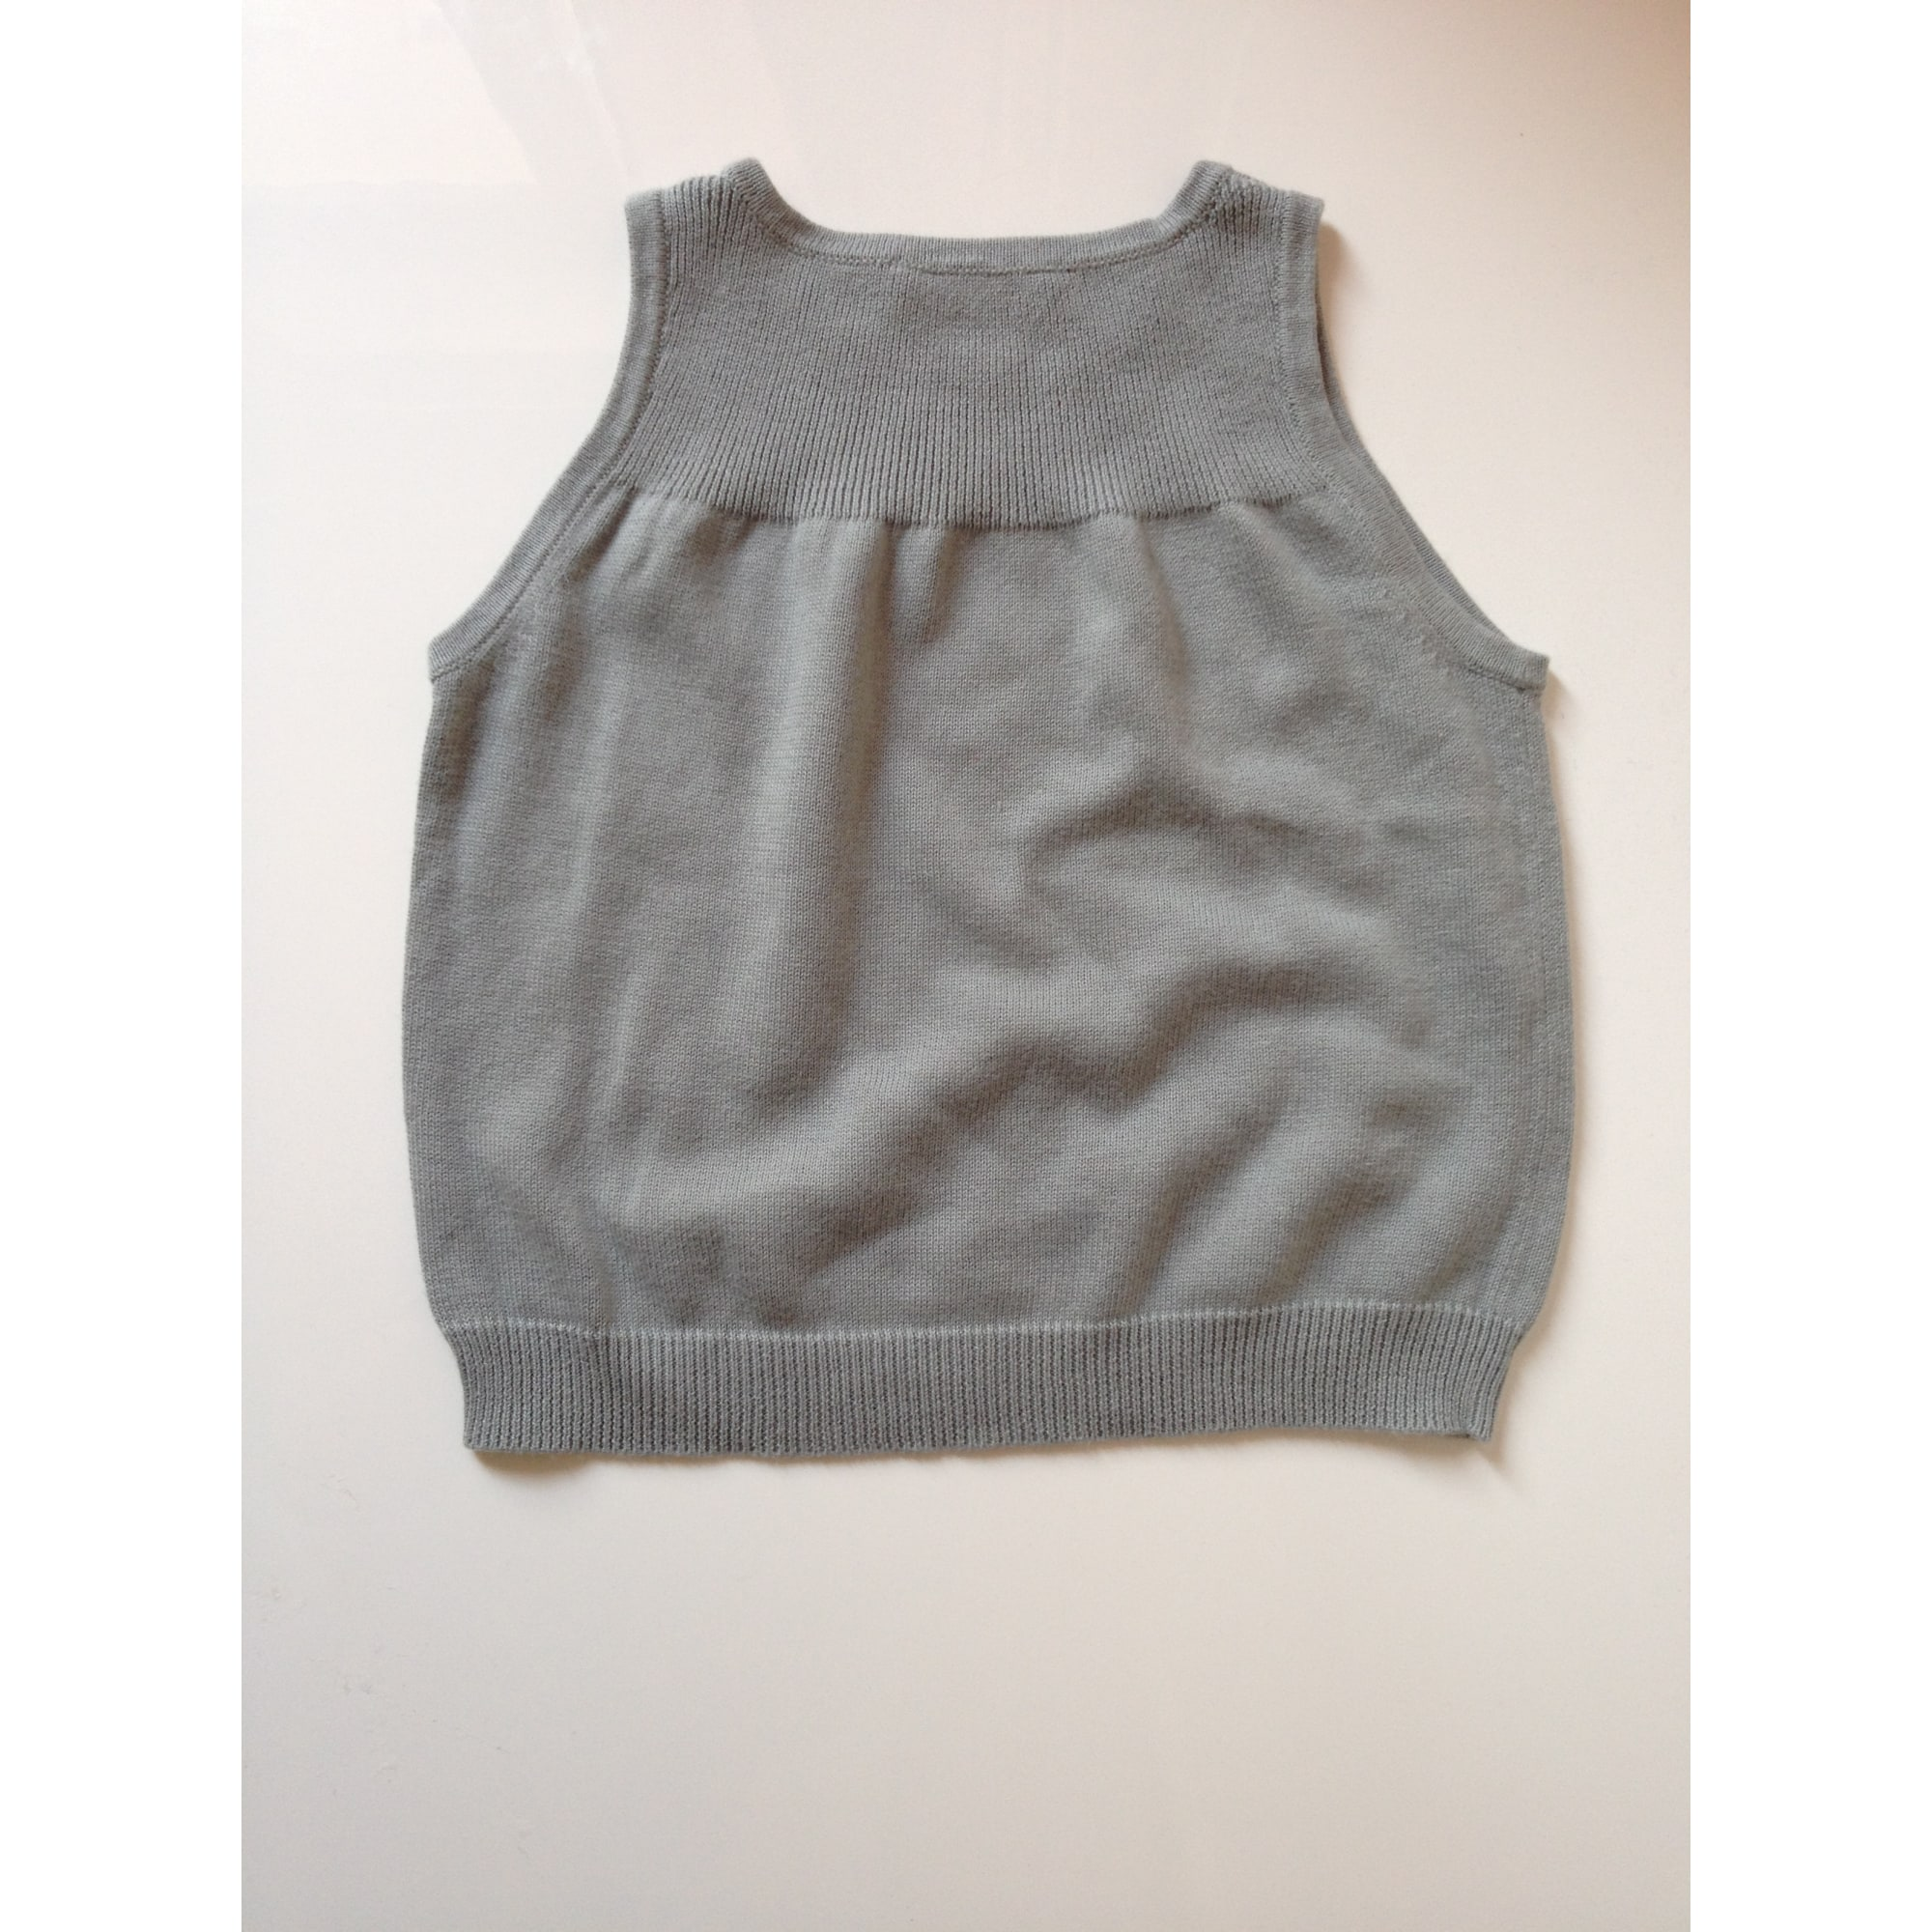 Top, Tee-shirt BONPOINT Gris, anthracite